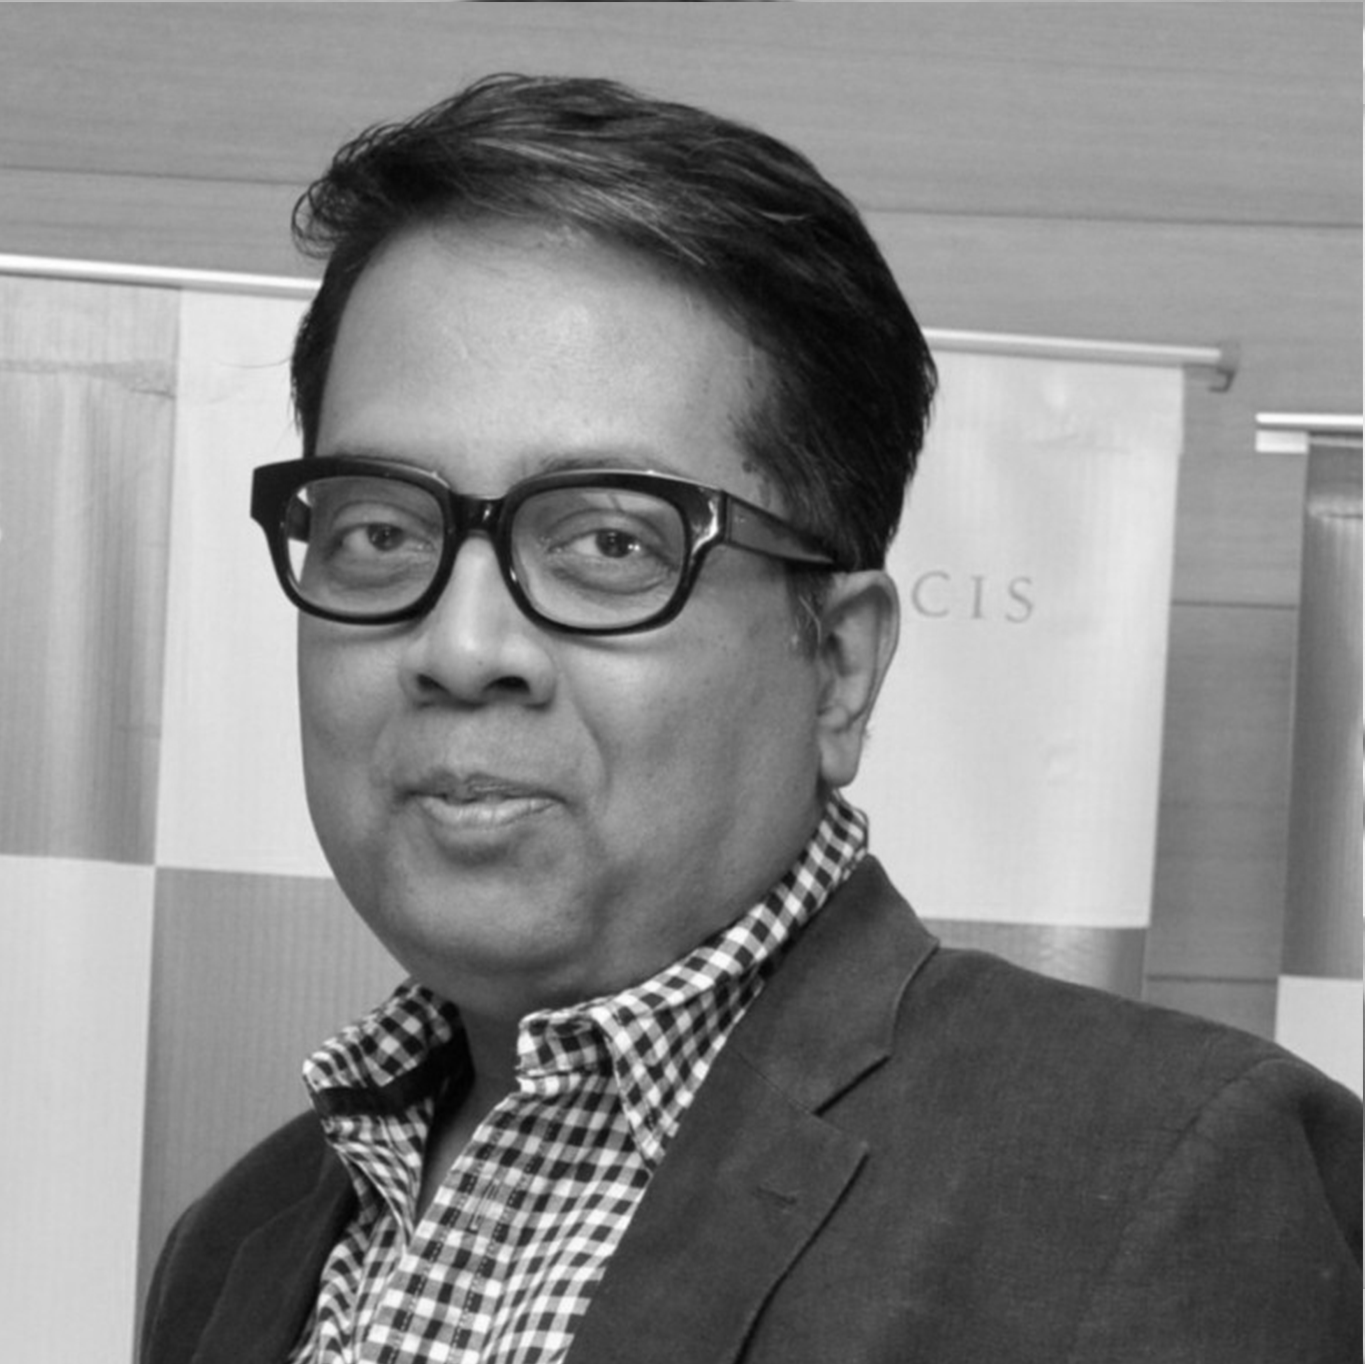 Partha Sinha - PRESIDENT, TIMES GROUP, he had been a nuclear design engineer, a banker, strategy,marketing head of media & internet companies and an advertising strategist